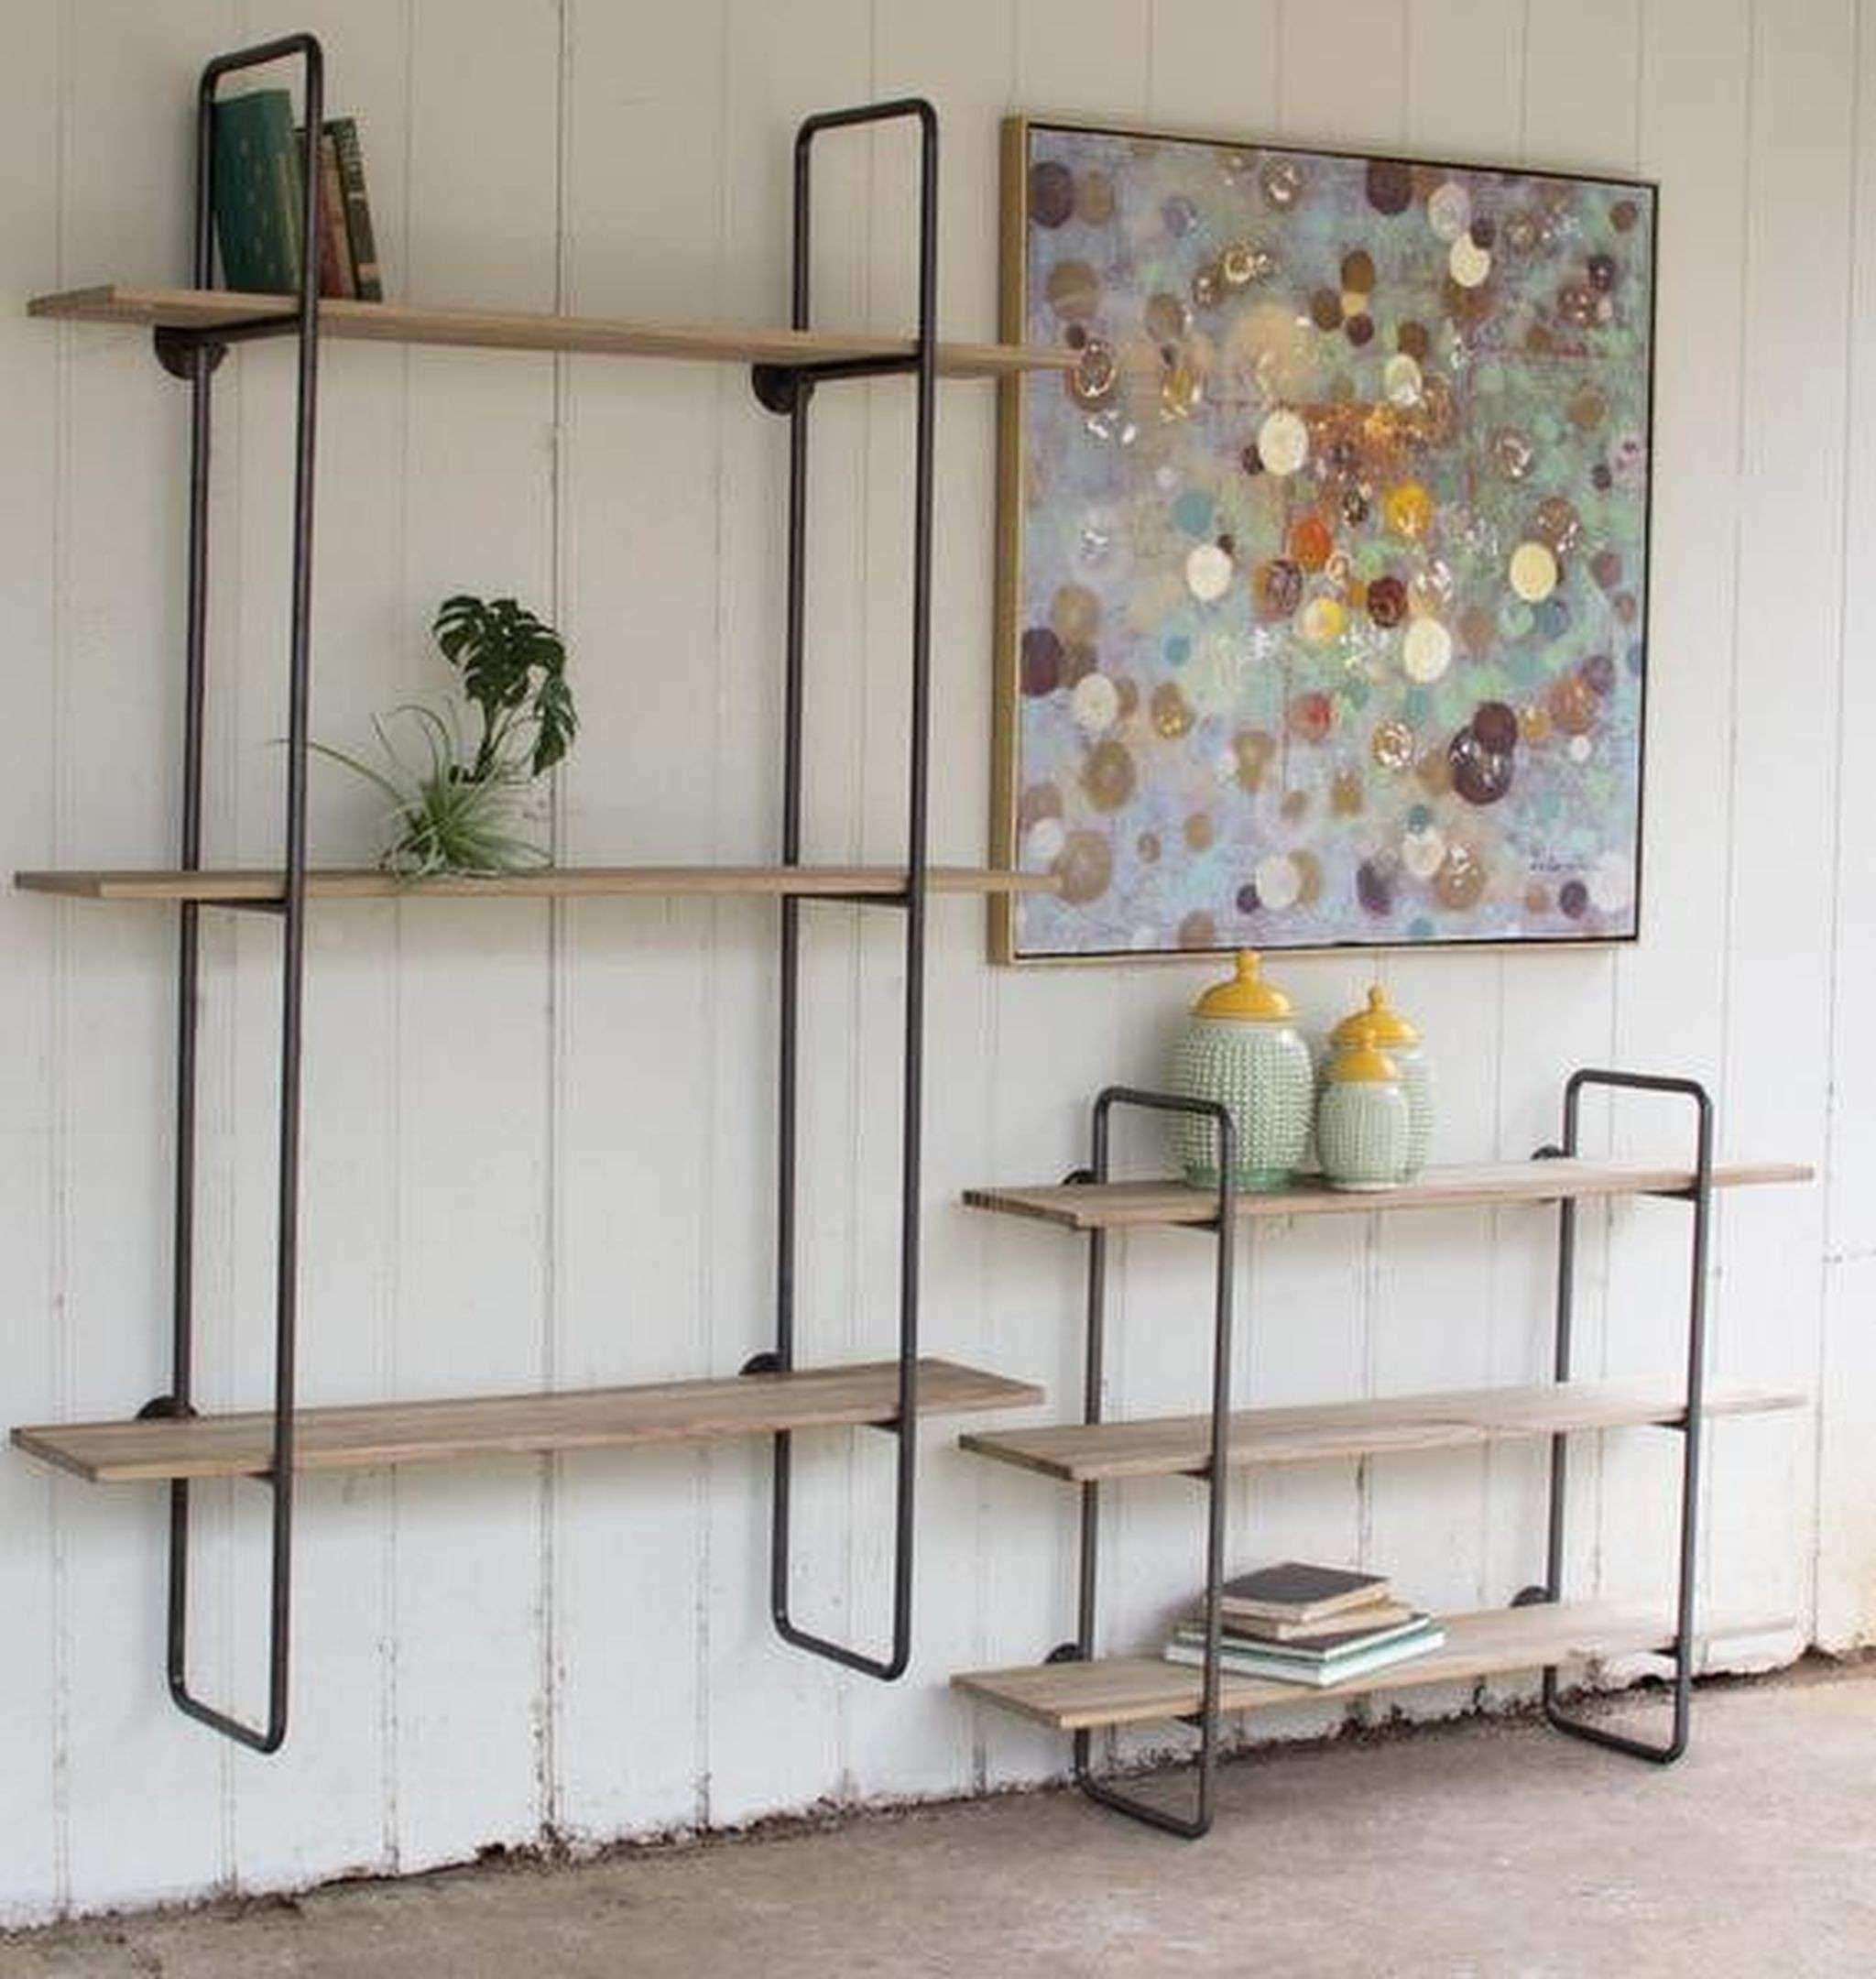 Incredible Shelves Neat Tiered Metal Tube Frame Wall Shelf With